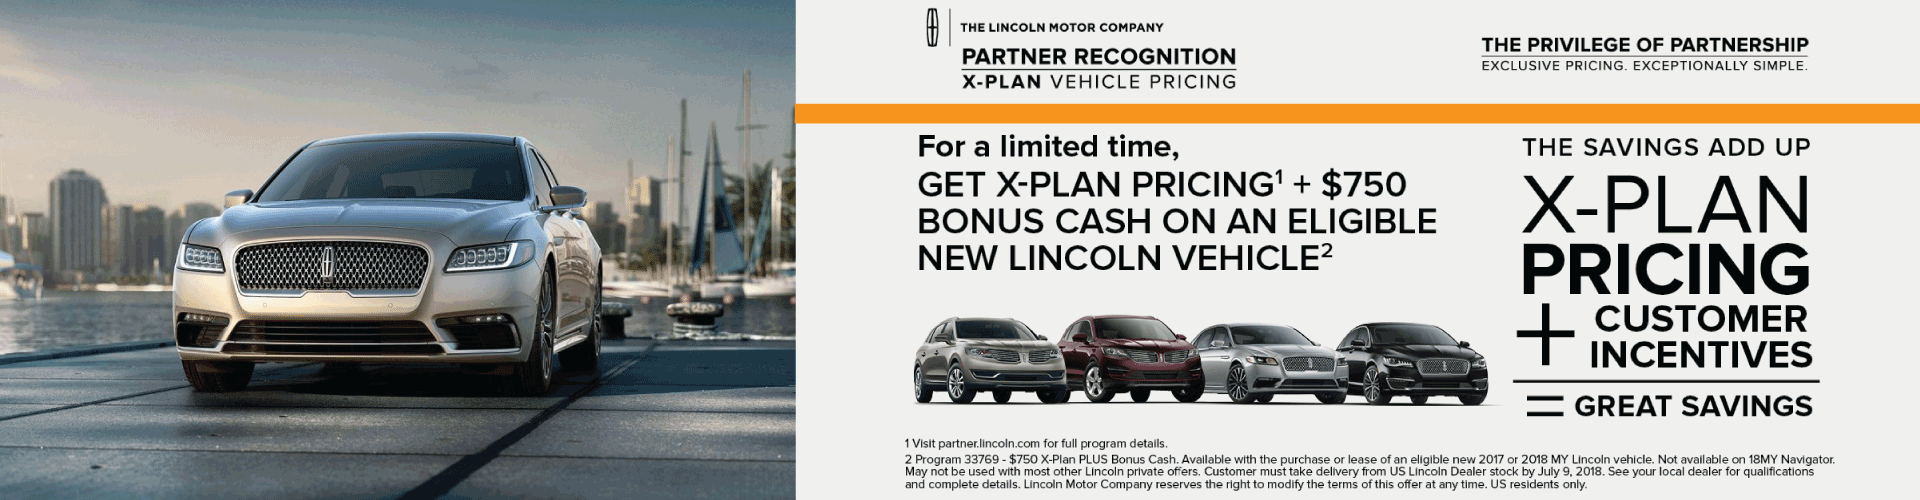 Lincoln X Plan Pricing